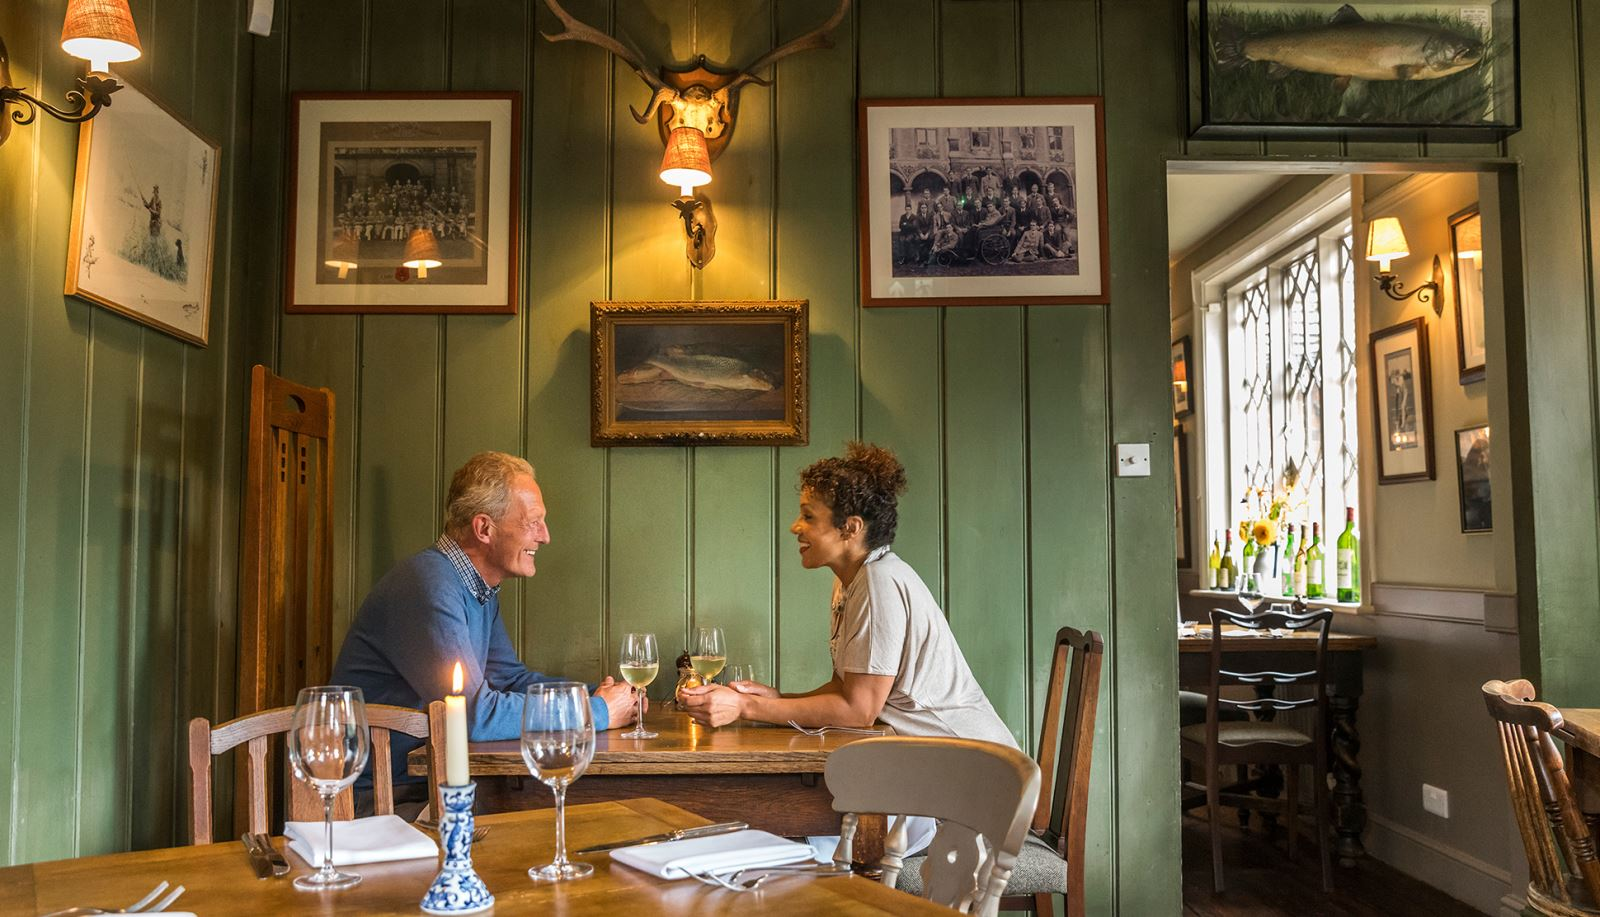 Couple Eating Dinner at Hampshire Pub